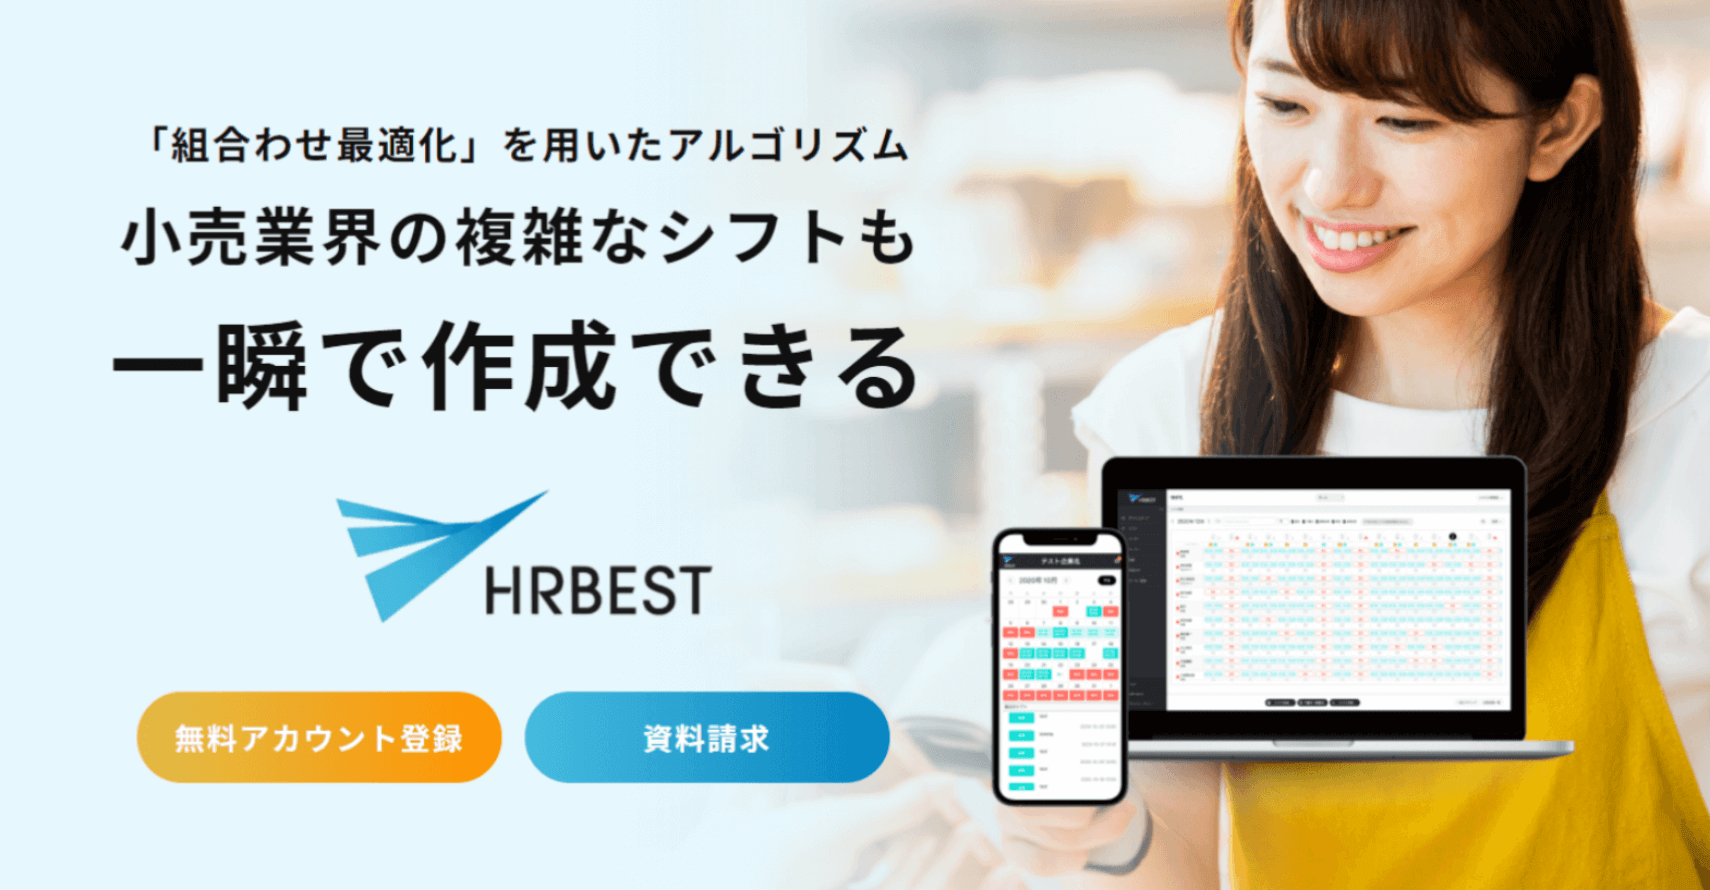 article-banner-hrbest-retail